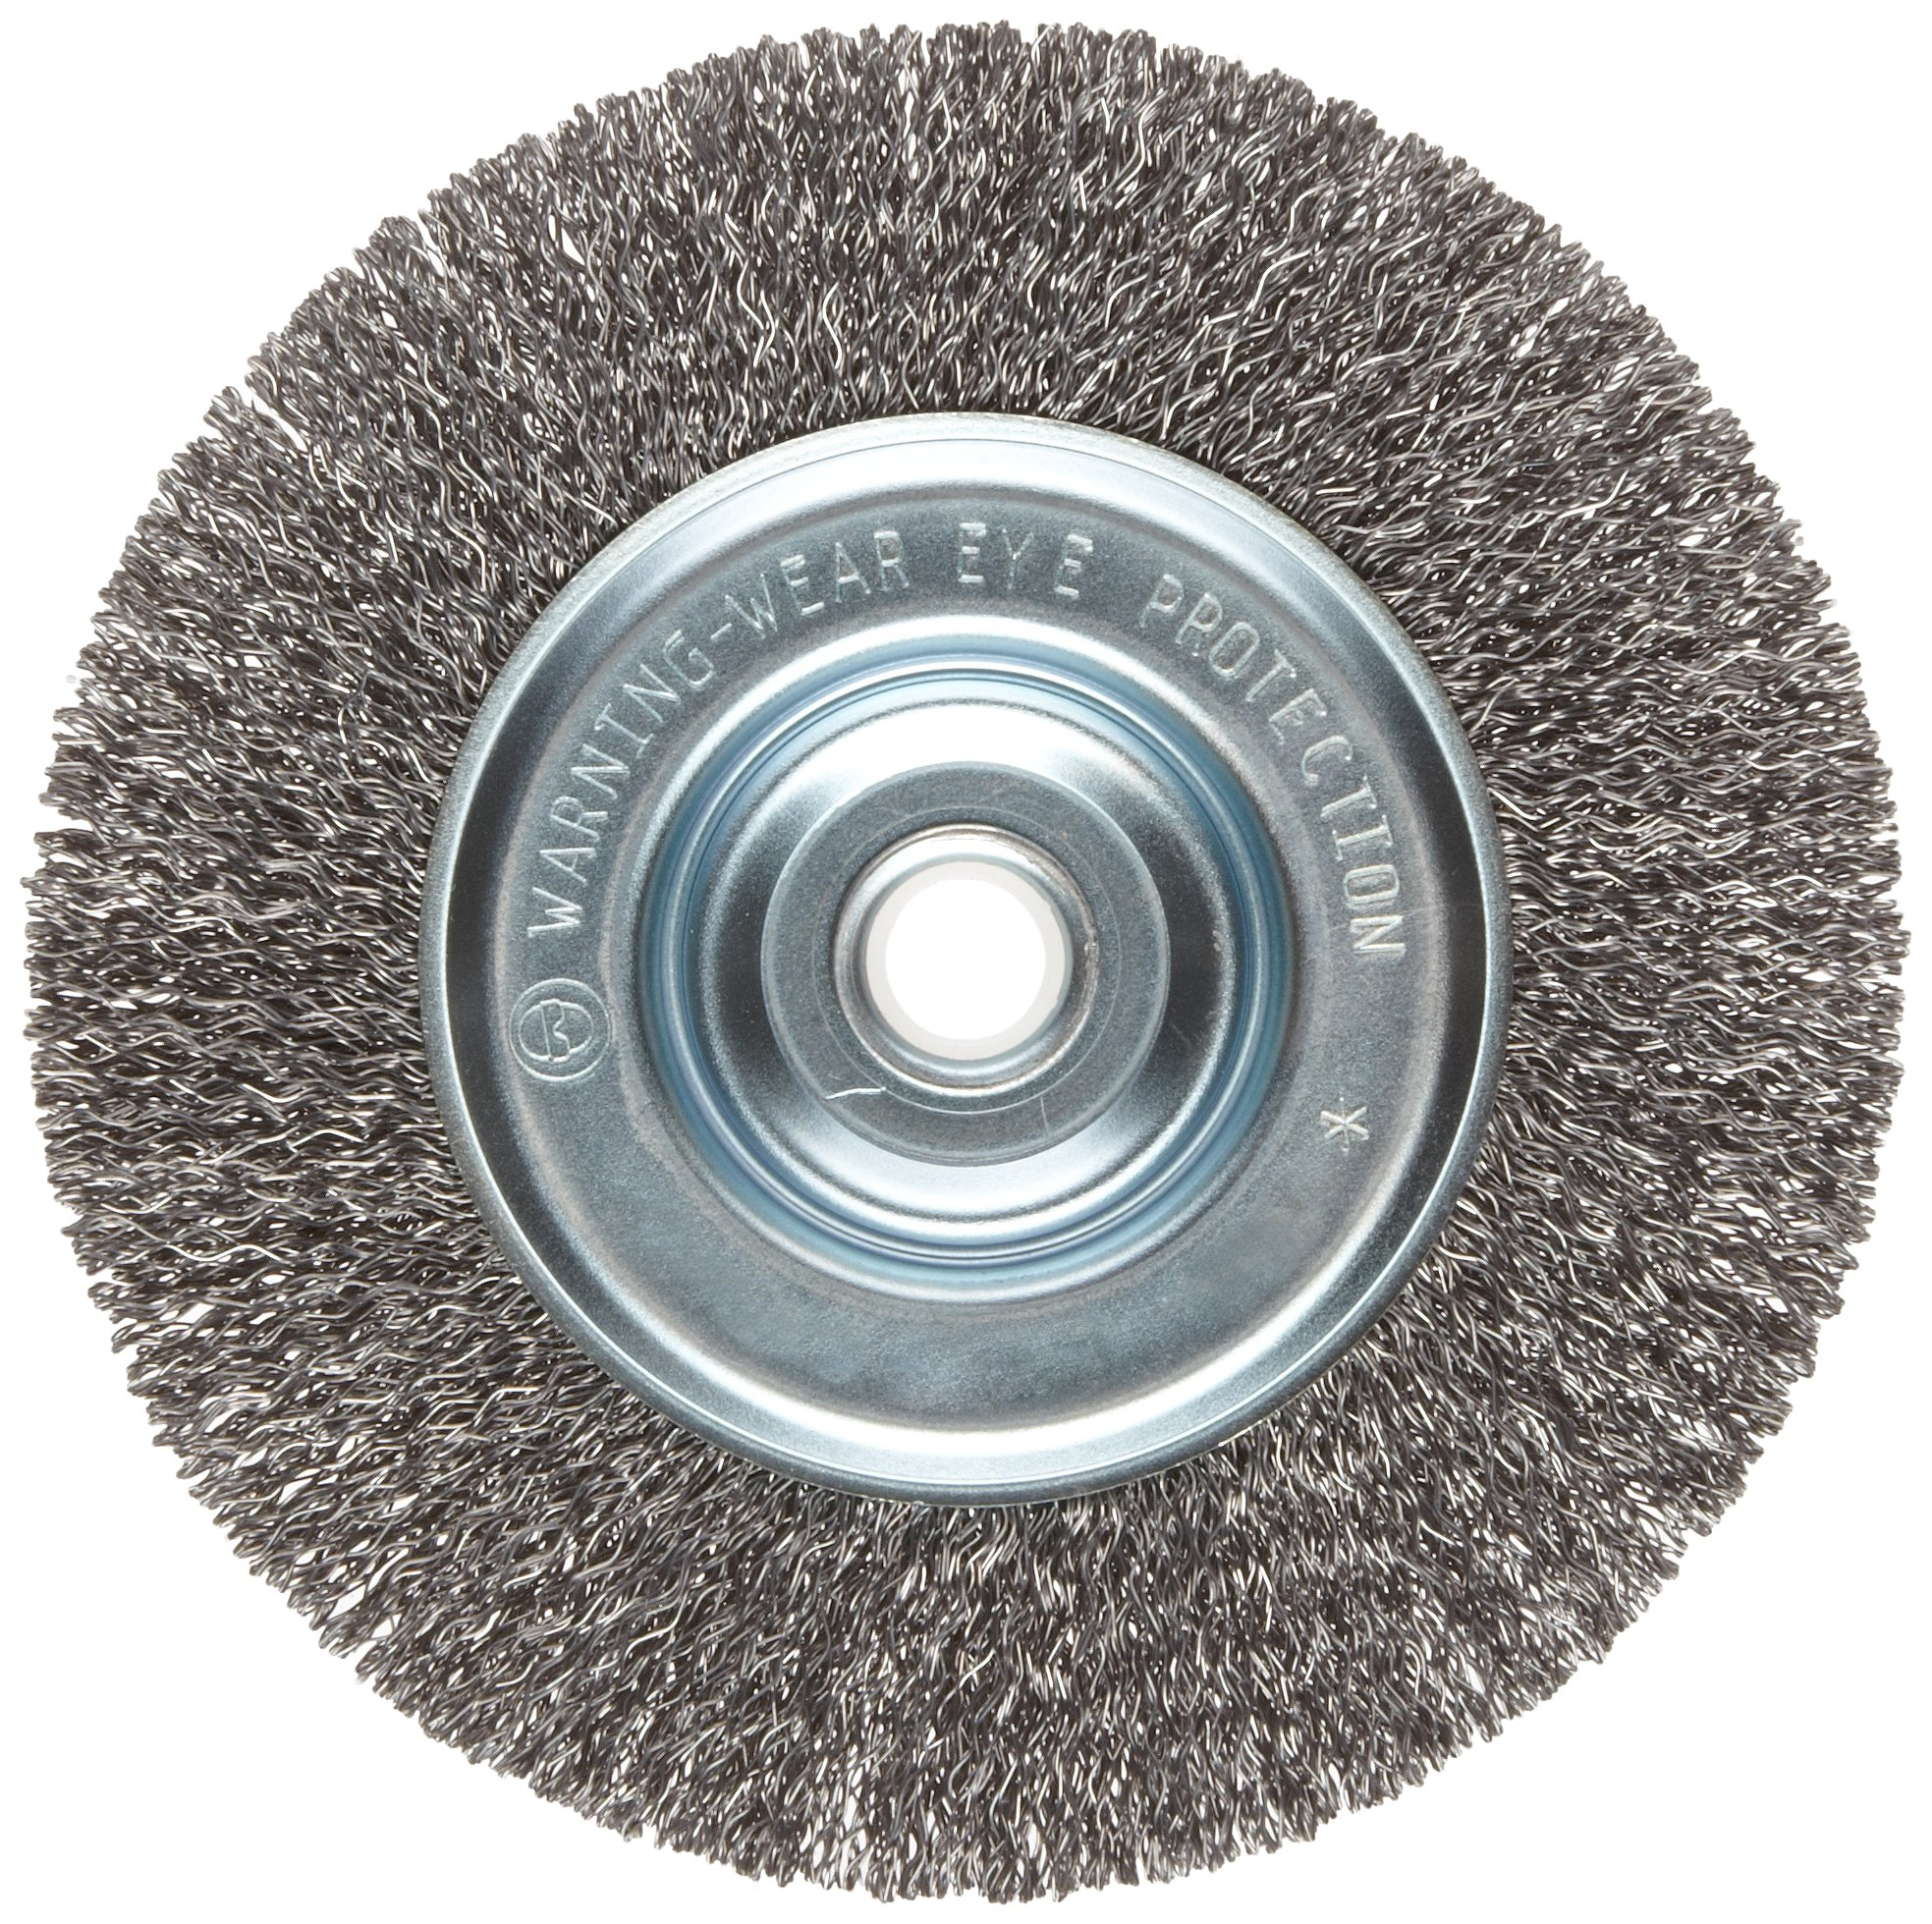 Weiler Vortec Pro Narrow Face Wire Wheel Brush, Round Hole, Carbon Steel, Crimped Wire, 6'' Diameter, 0.014'' Wire Diameter, 5/8-1/2'' Arbor, 6000 rpm